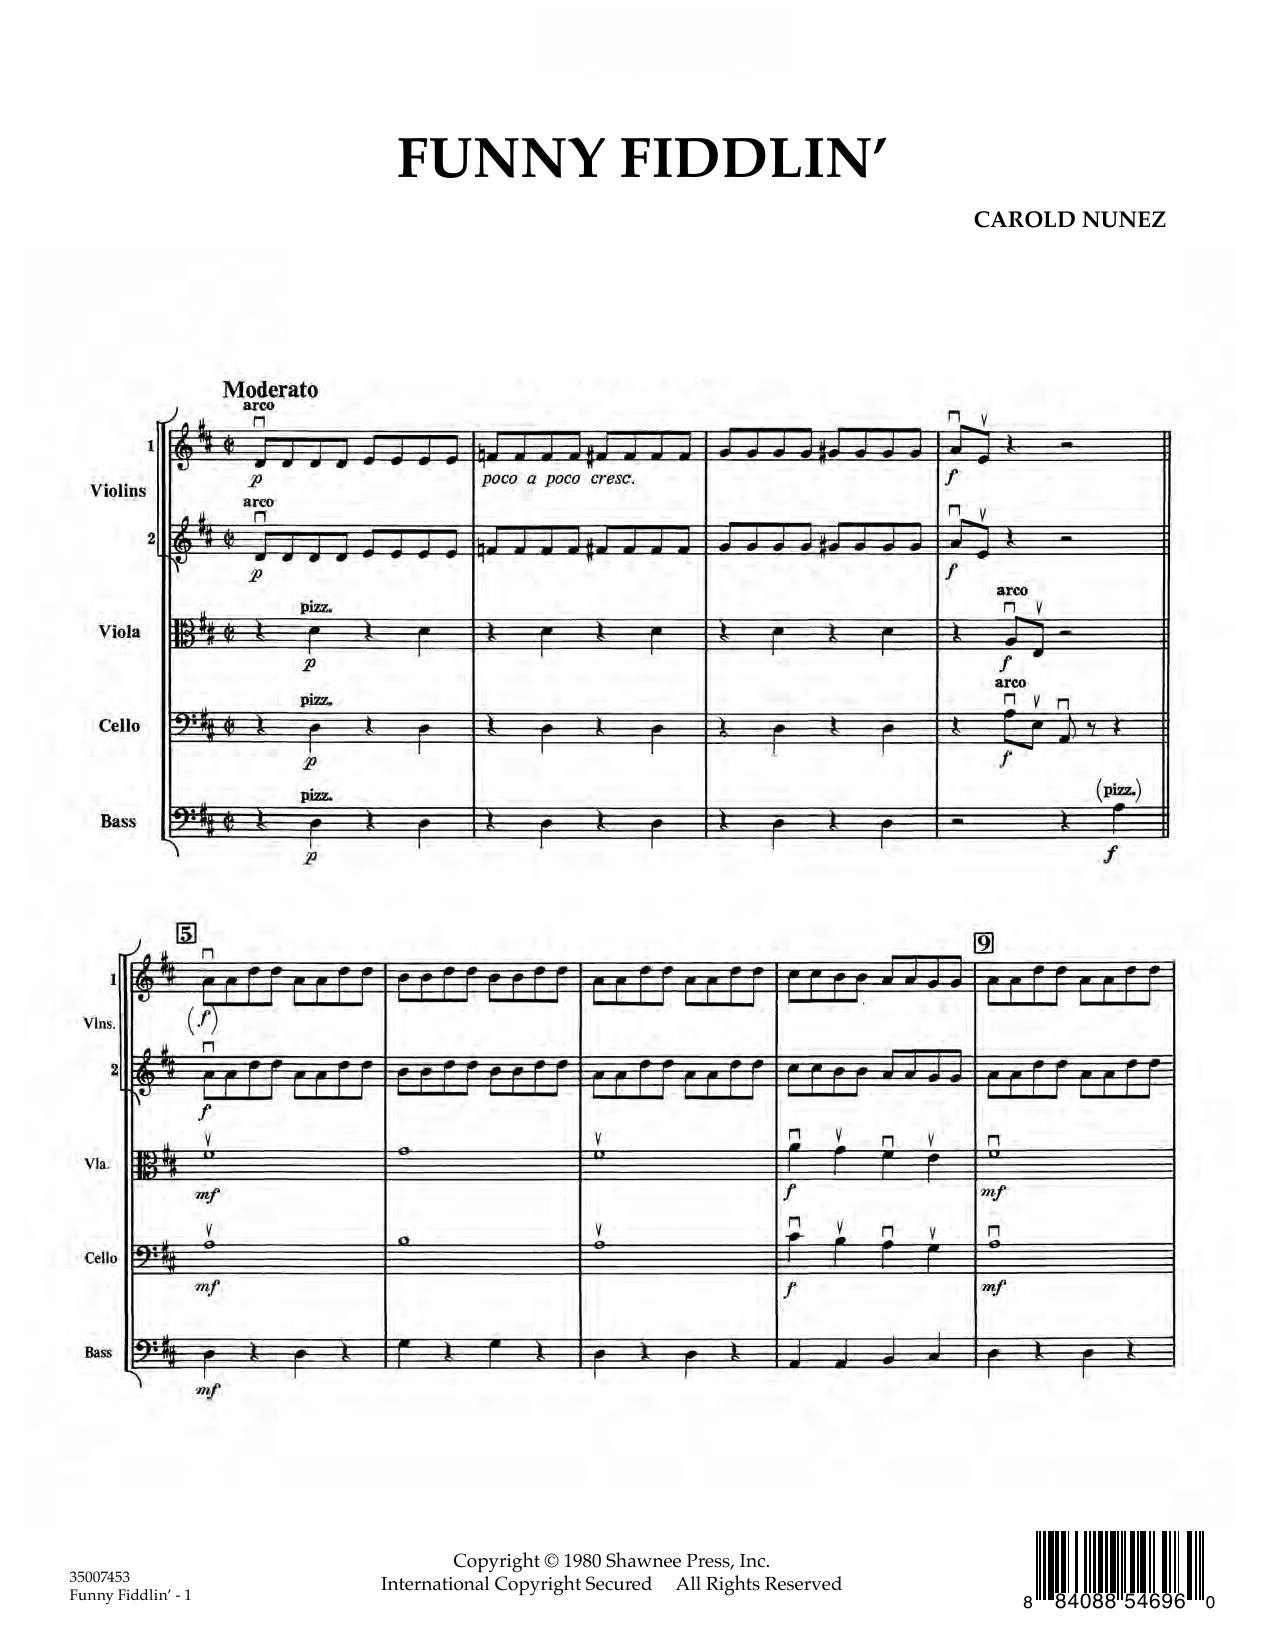 Funny Fiddlin' (COMPLETE) sheet music for orchestra by Carold Nunez. Score Image Preview.